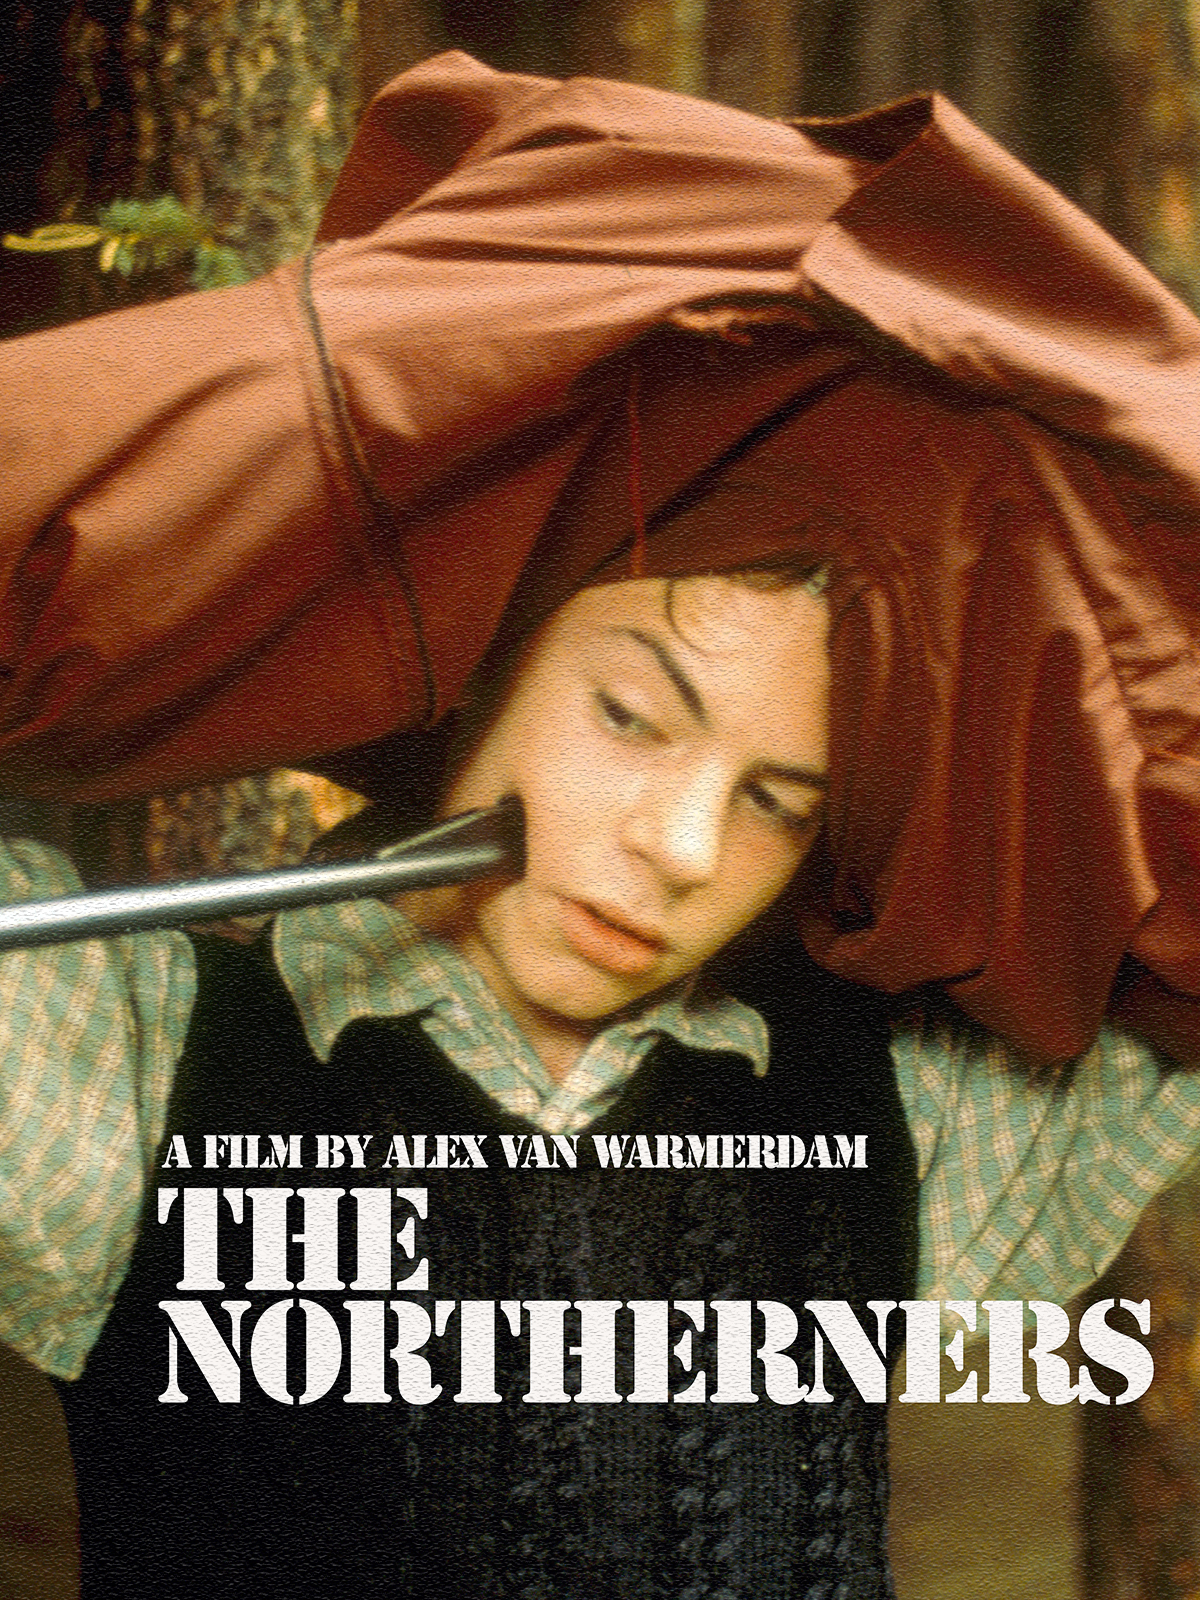 THE NORTHENERS 1200X1600 ARTWORK AMAZON